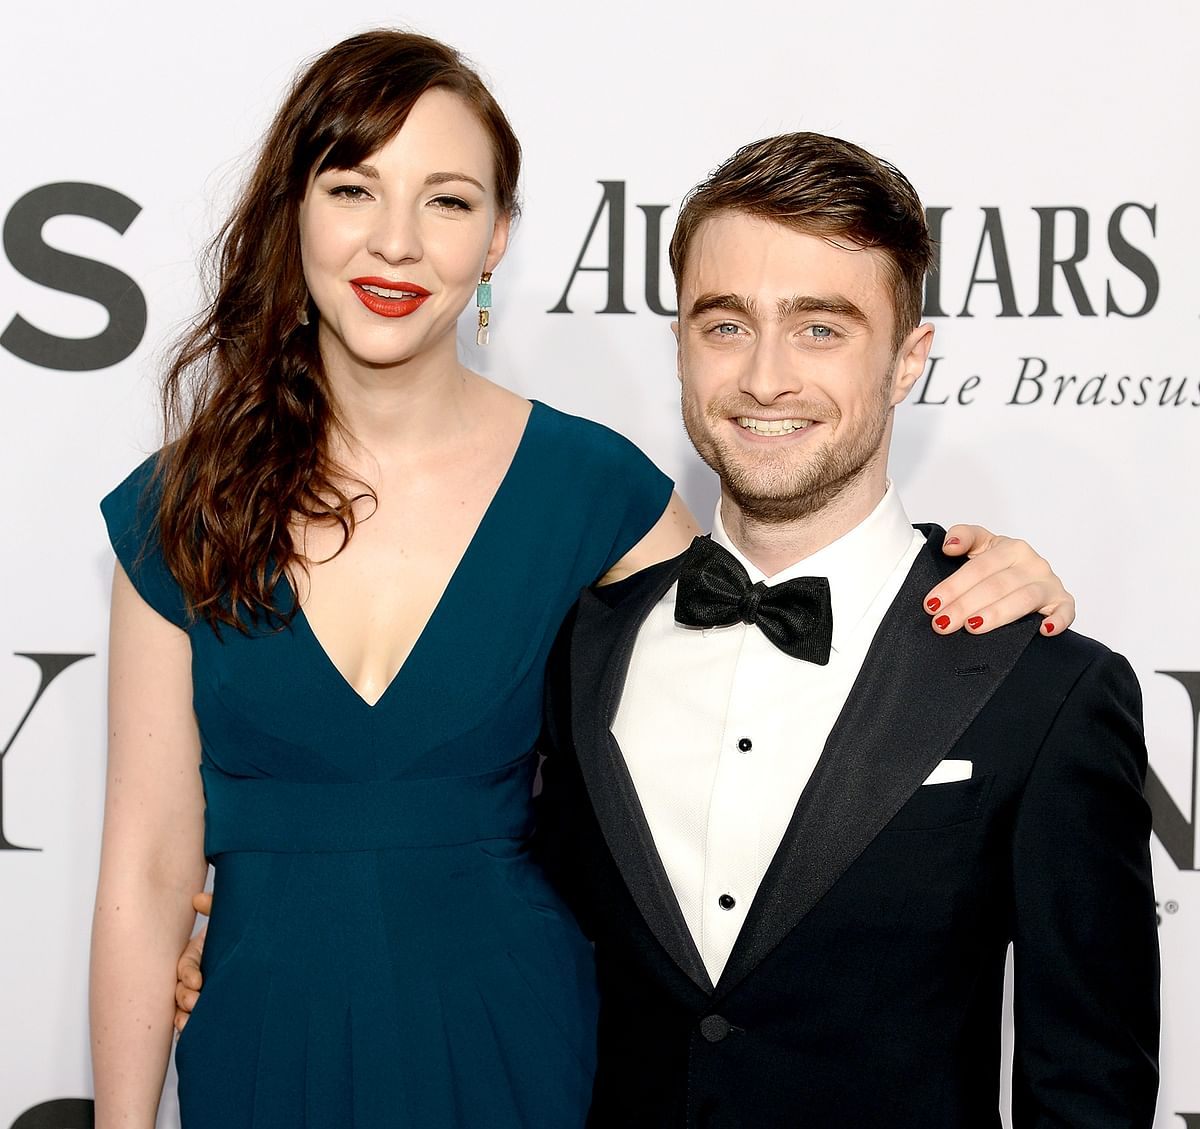 Daniel Radcliffe's best friend is his girlfriend